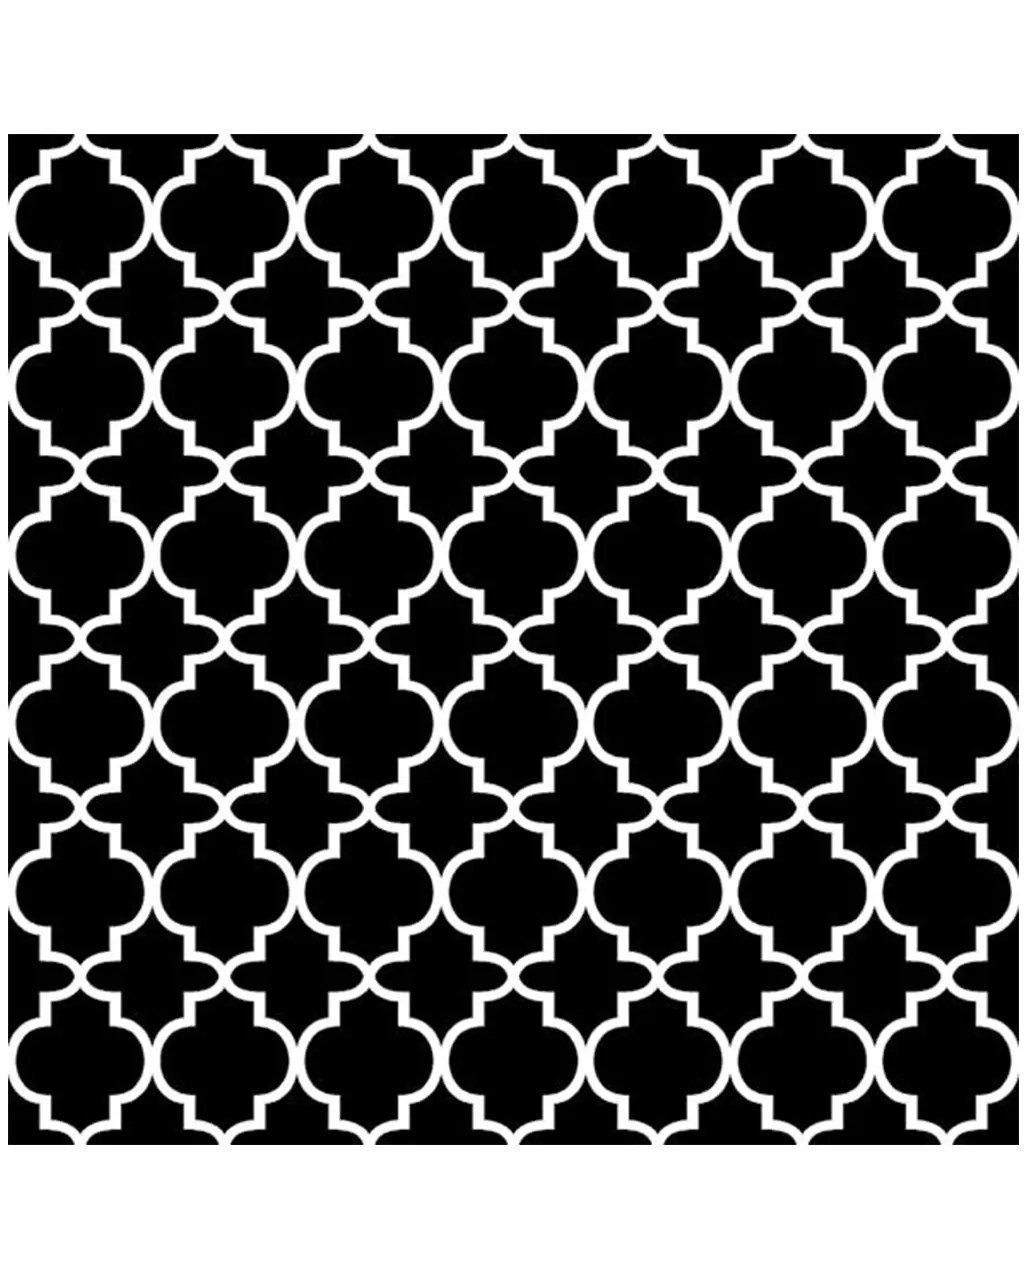 Serviette De Table Halloween Patterned Napkin Black And White 20 Pc